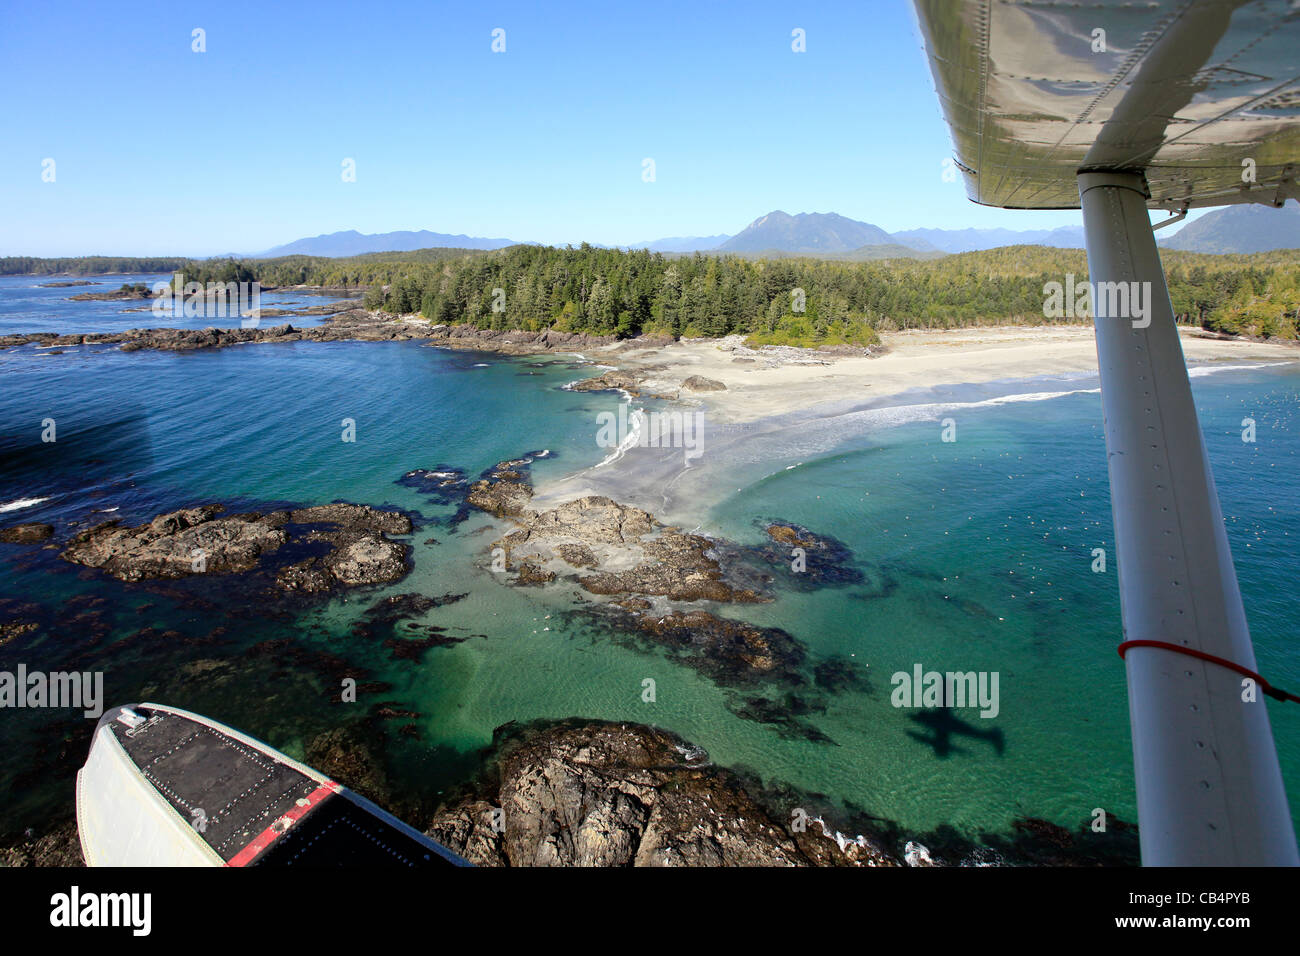 View of Tofino by floatplane on Vancouver Island in British Columbia, Canada - Stock Image